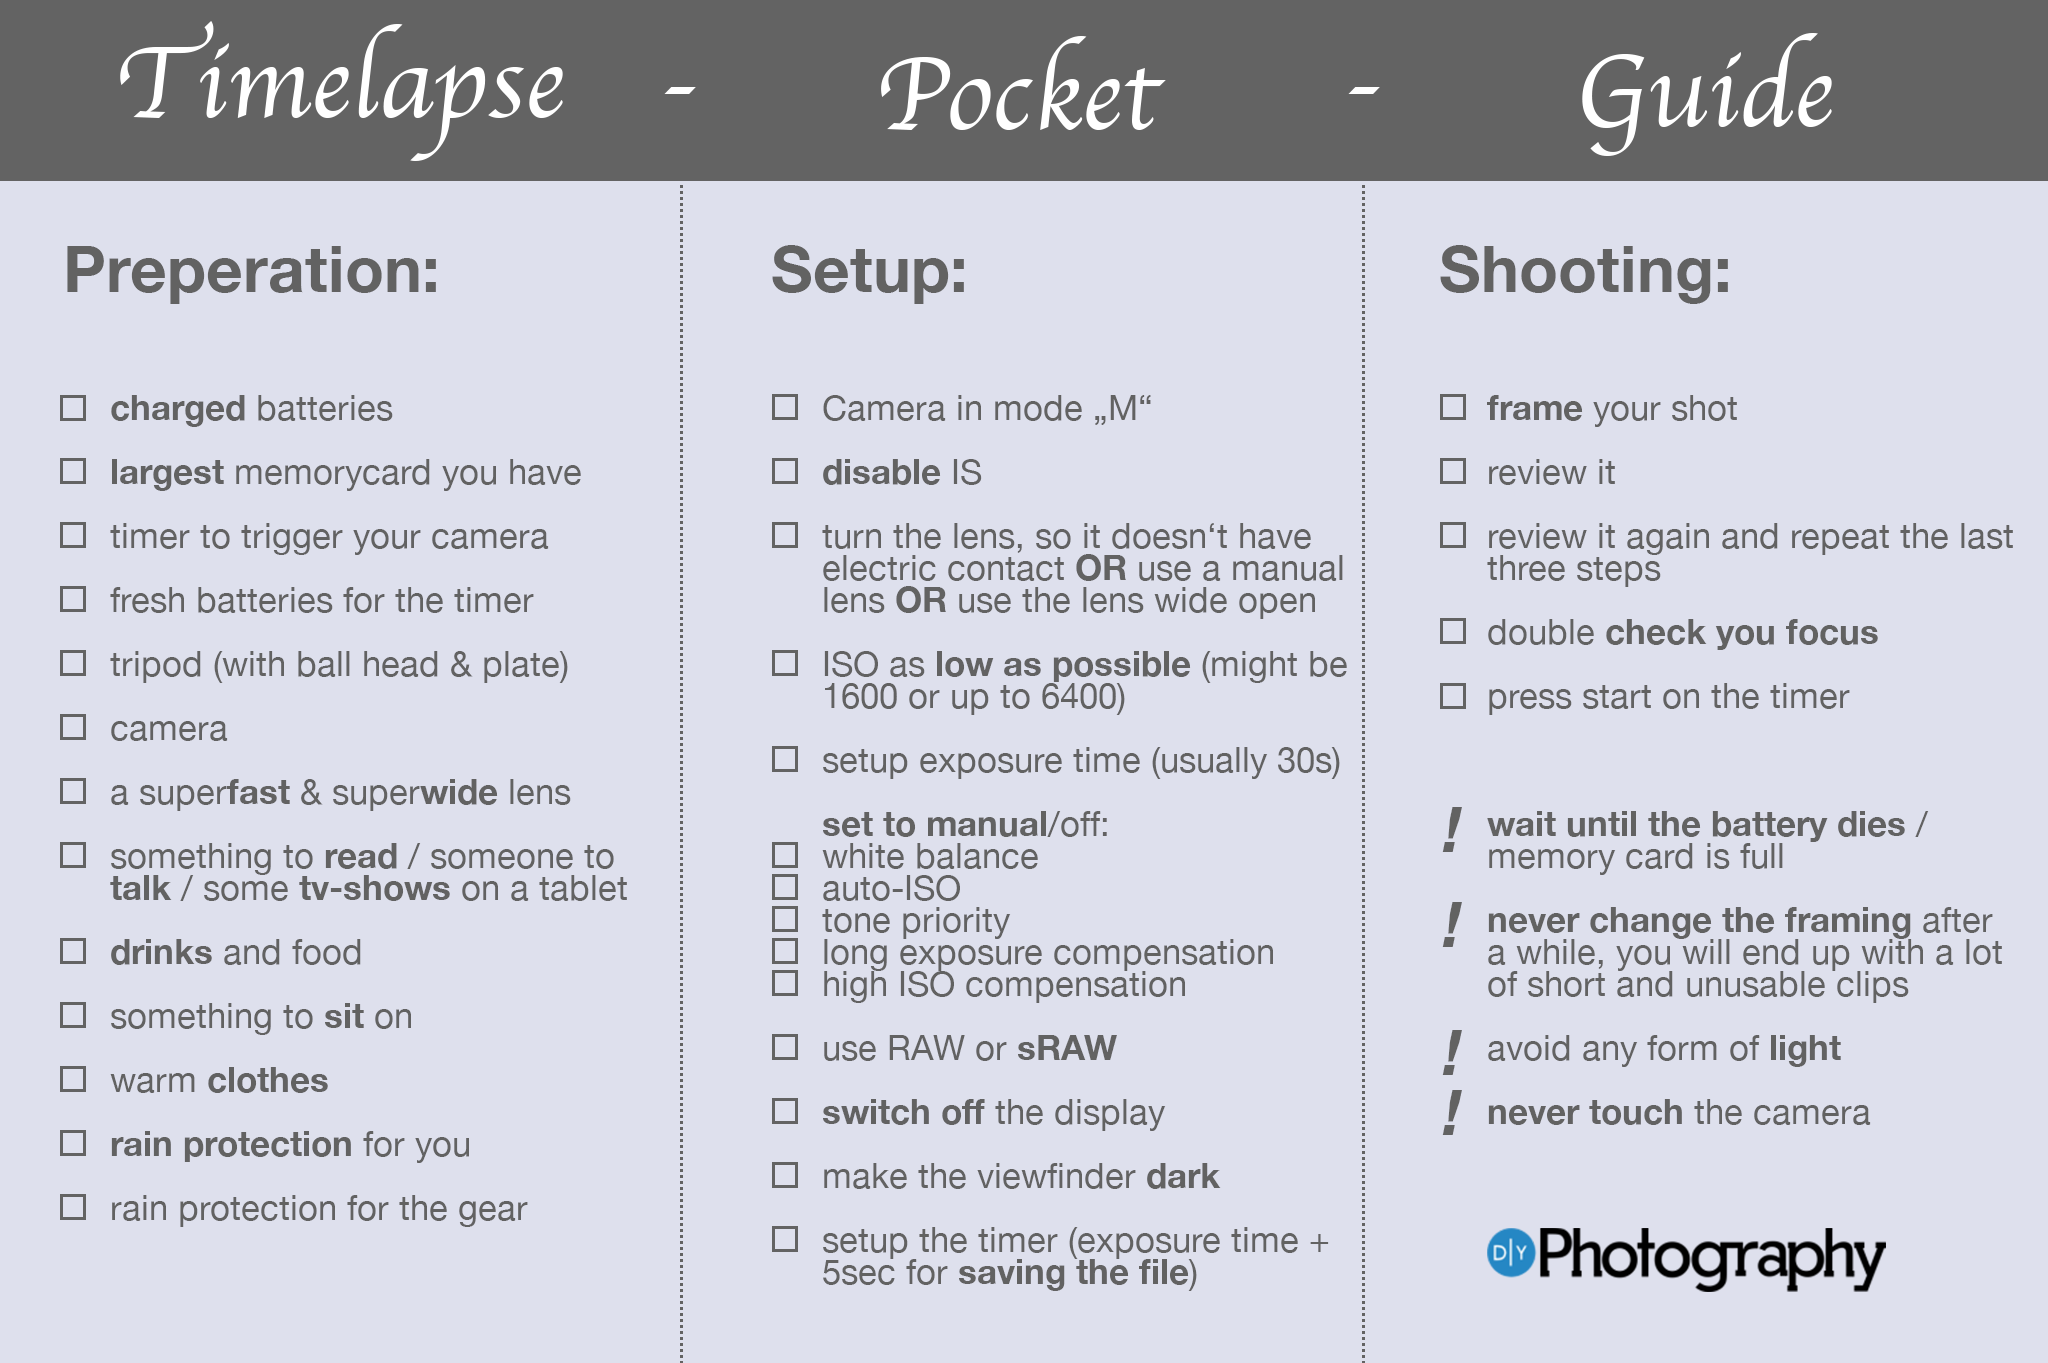 A Complete Checklist For Shooting Night-Time Time-Lapse Sequences - DIY Photography